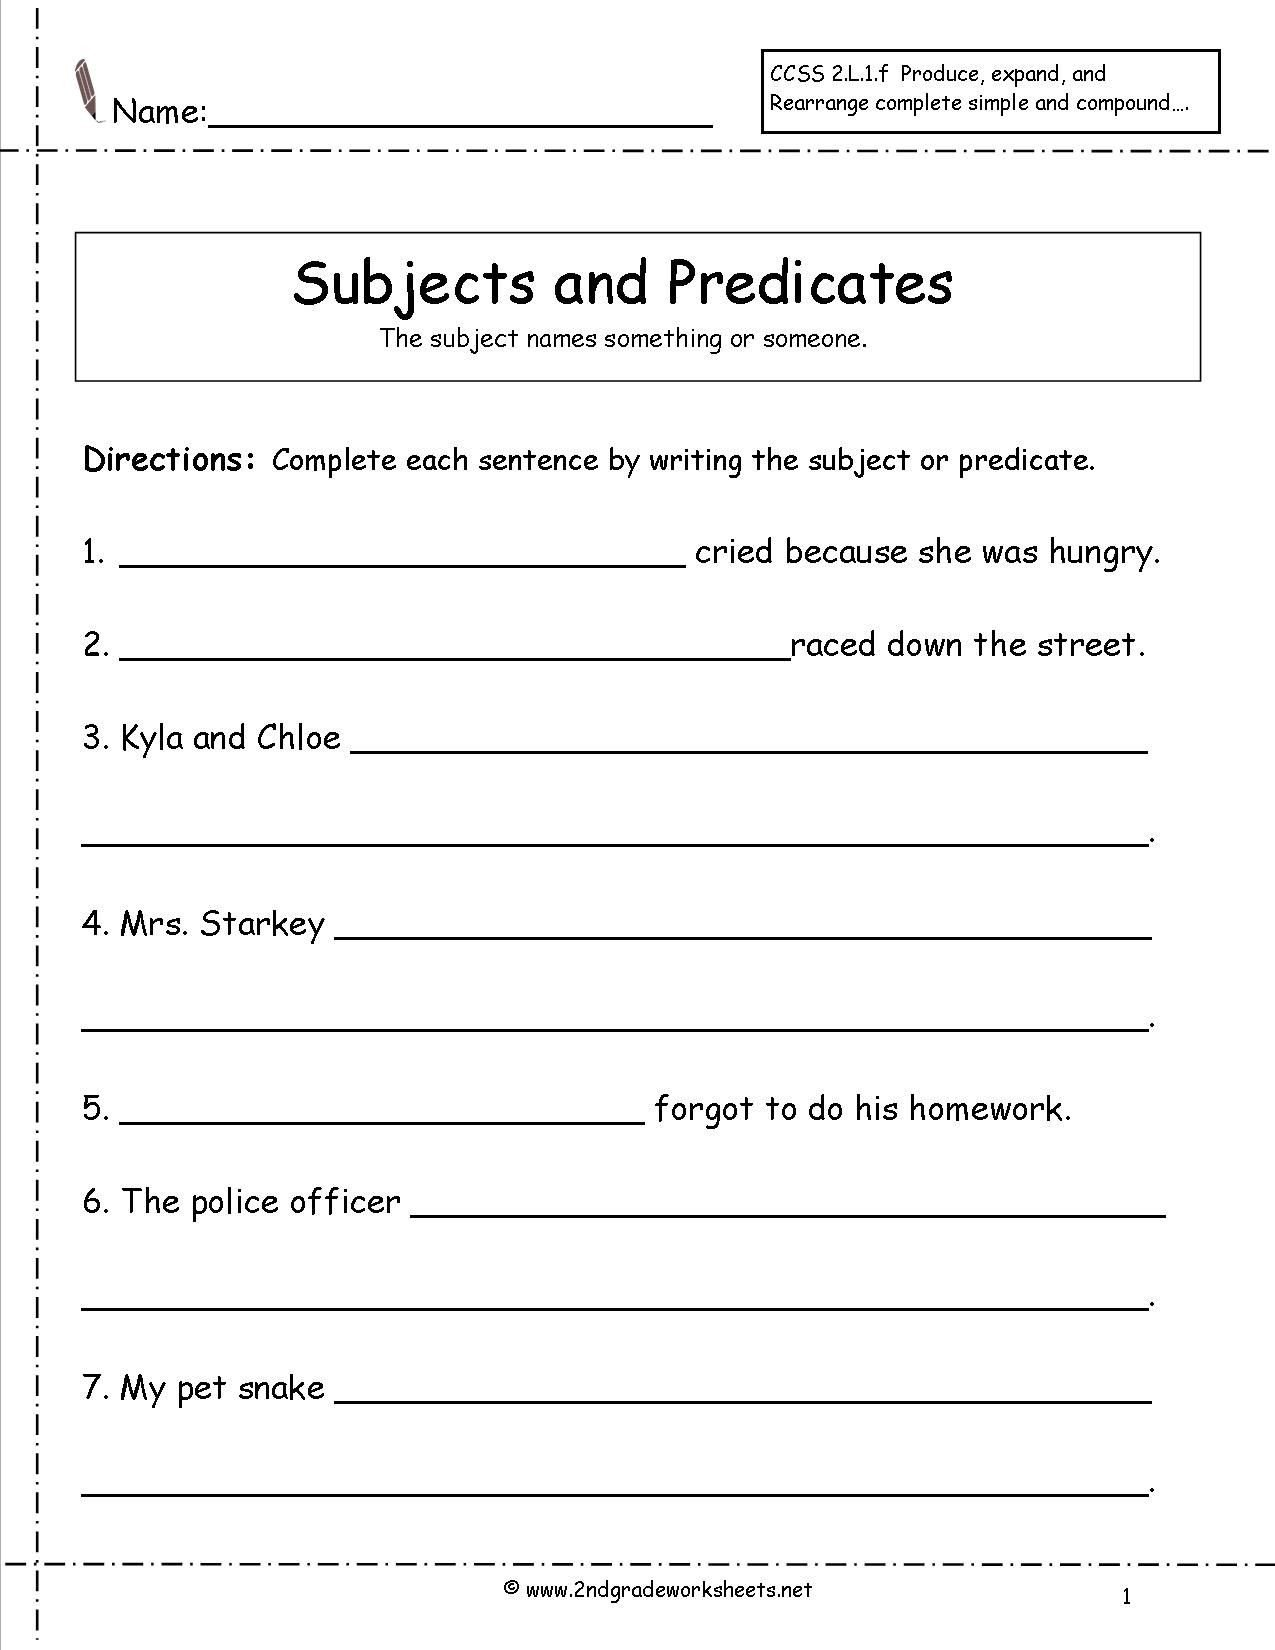 Topic Sentence Worksheets 2nd Grade Subject and Predicate Worksheet